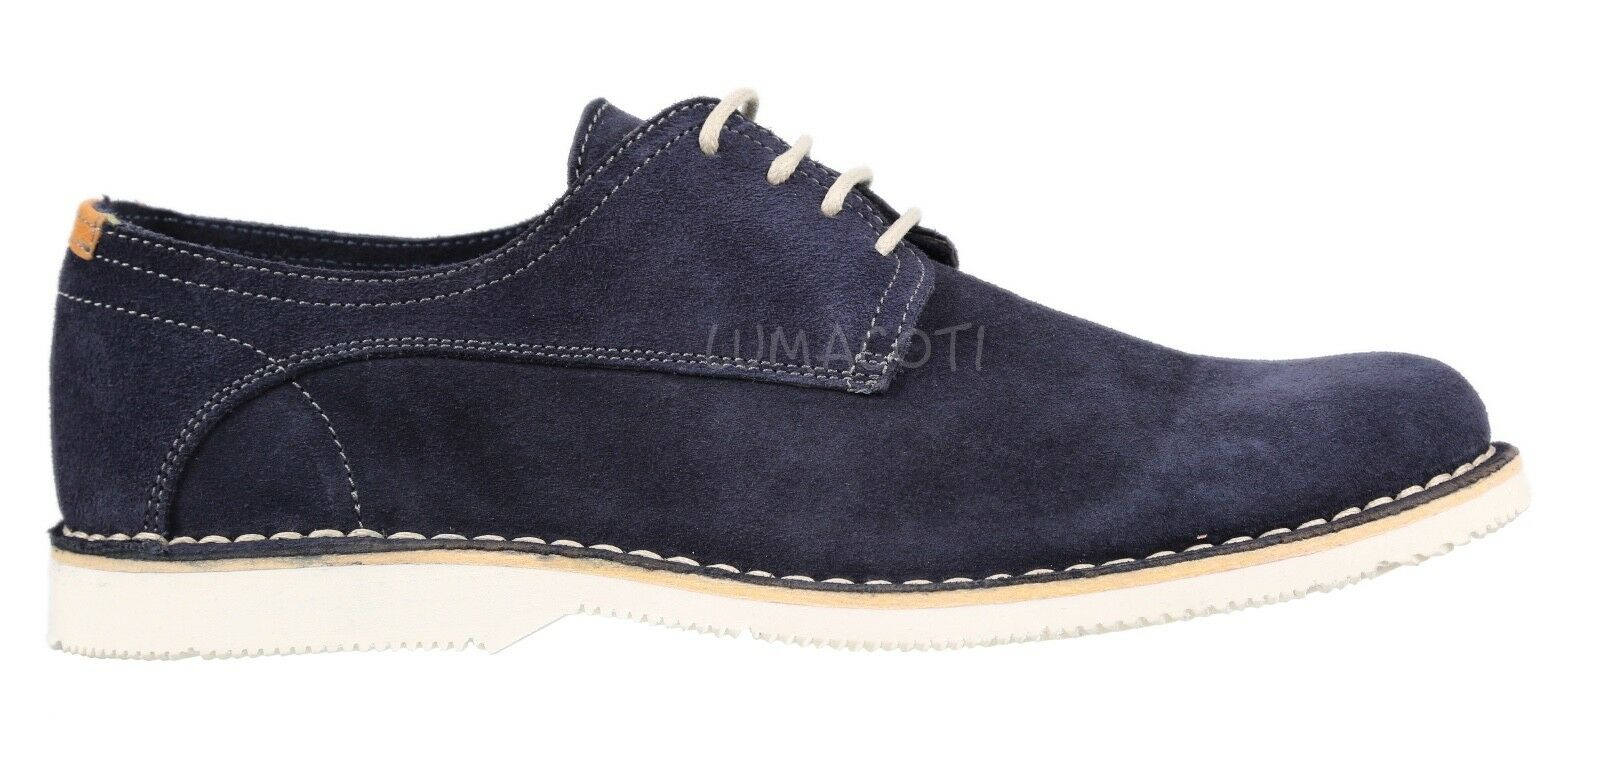 Mens Kenneth Kenneth Kenneth Cole Corbett Lace Up Navy Oxfords [KMU8020SU 410] ed2715